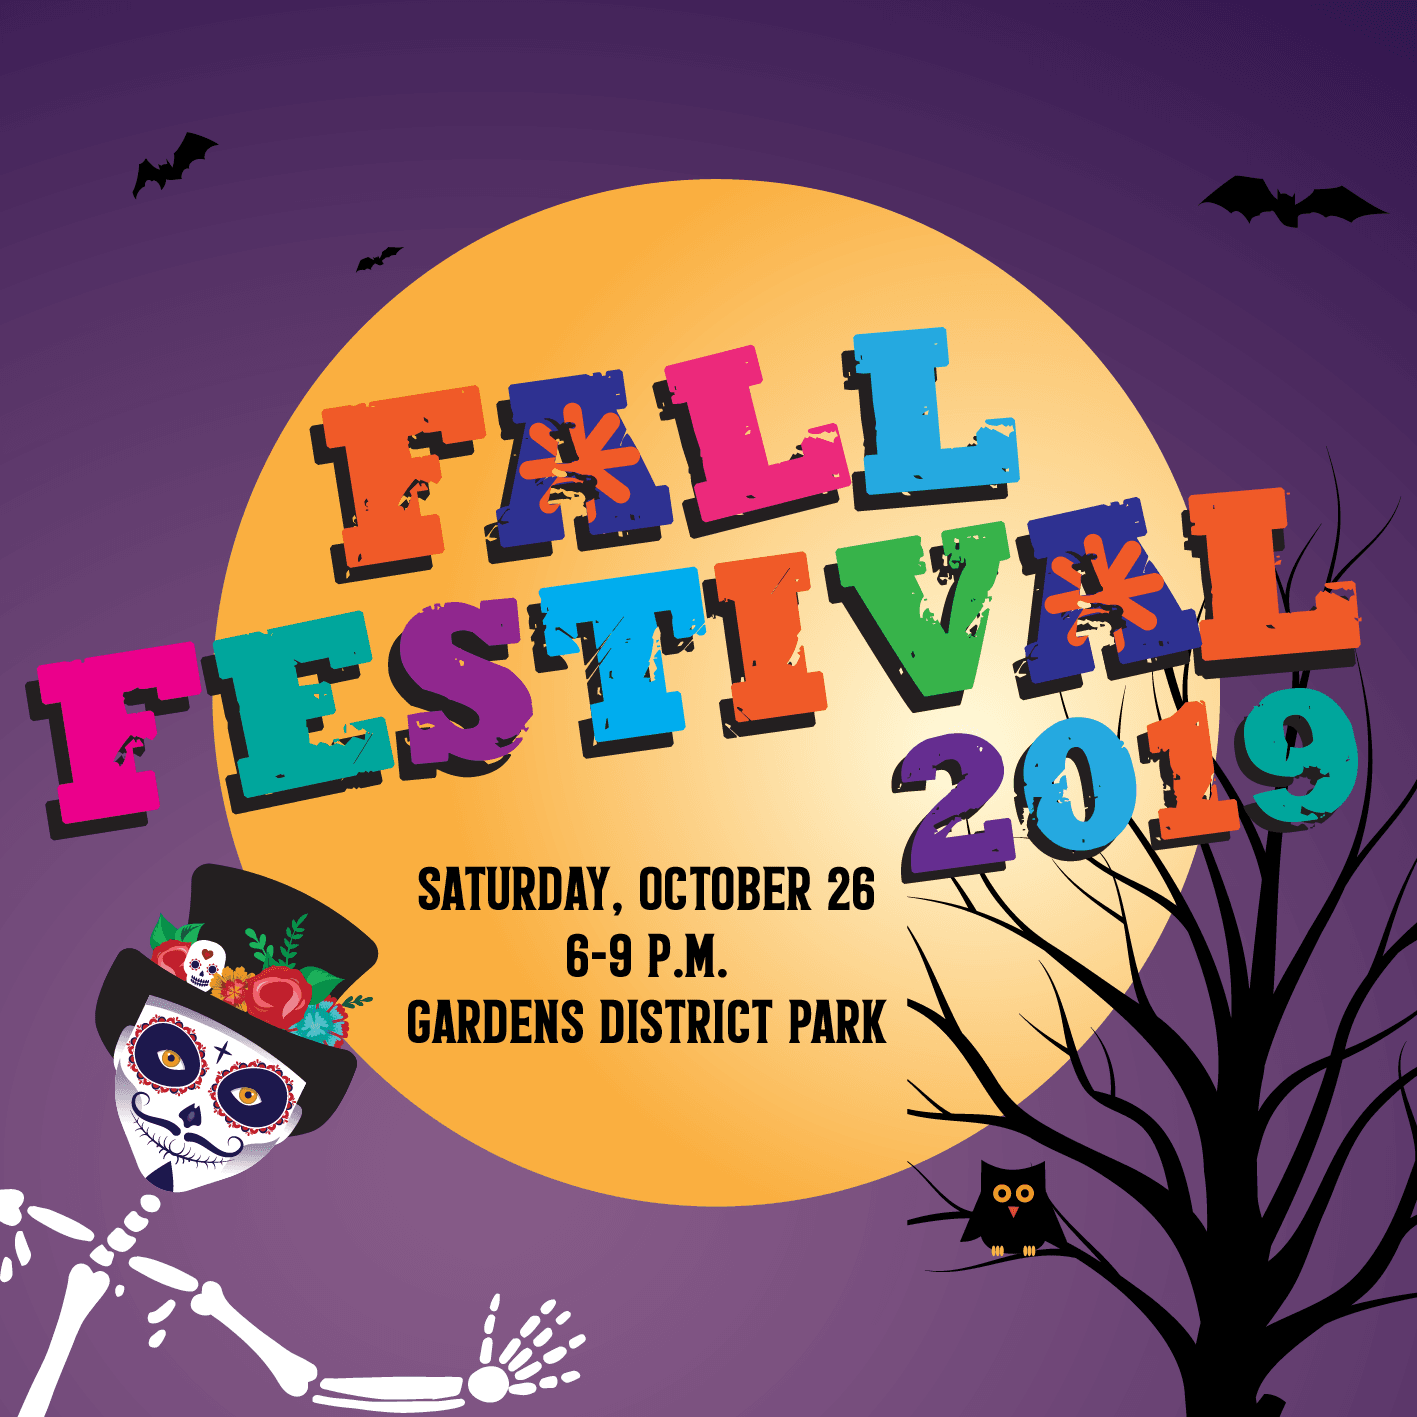 2019 Fall Festival on October 26th at 6-9 p.m. at Gardens District Park